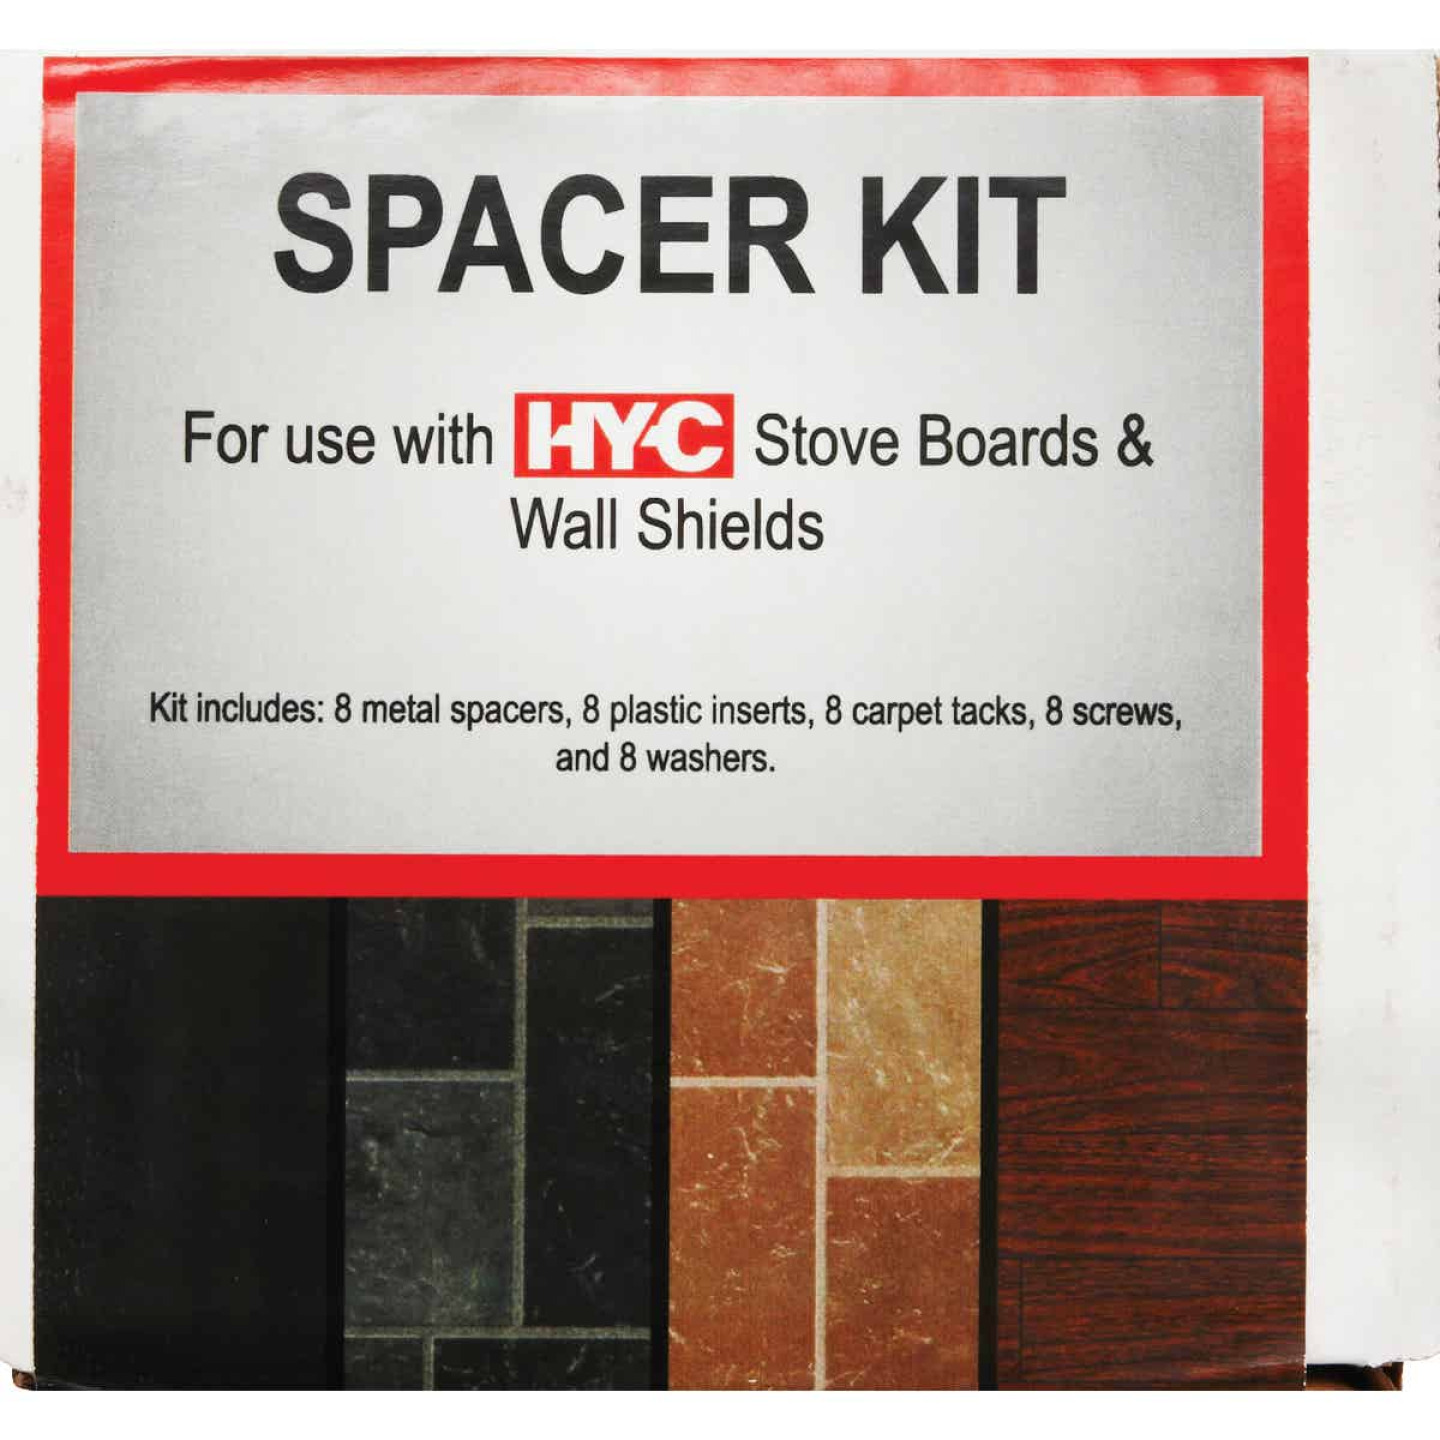 HY-C Wall Spacer Kit Image 4